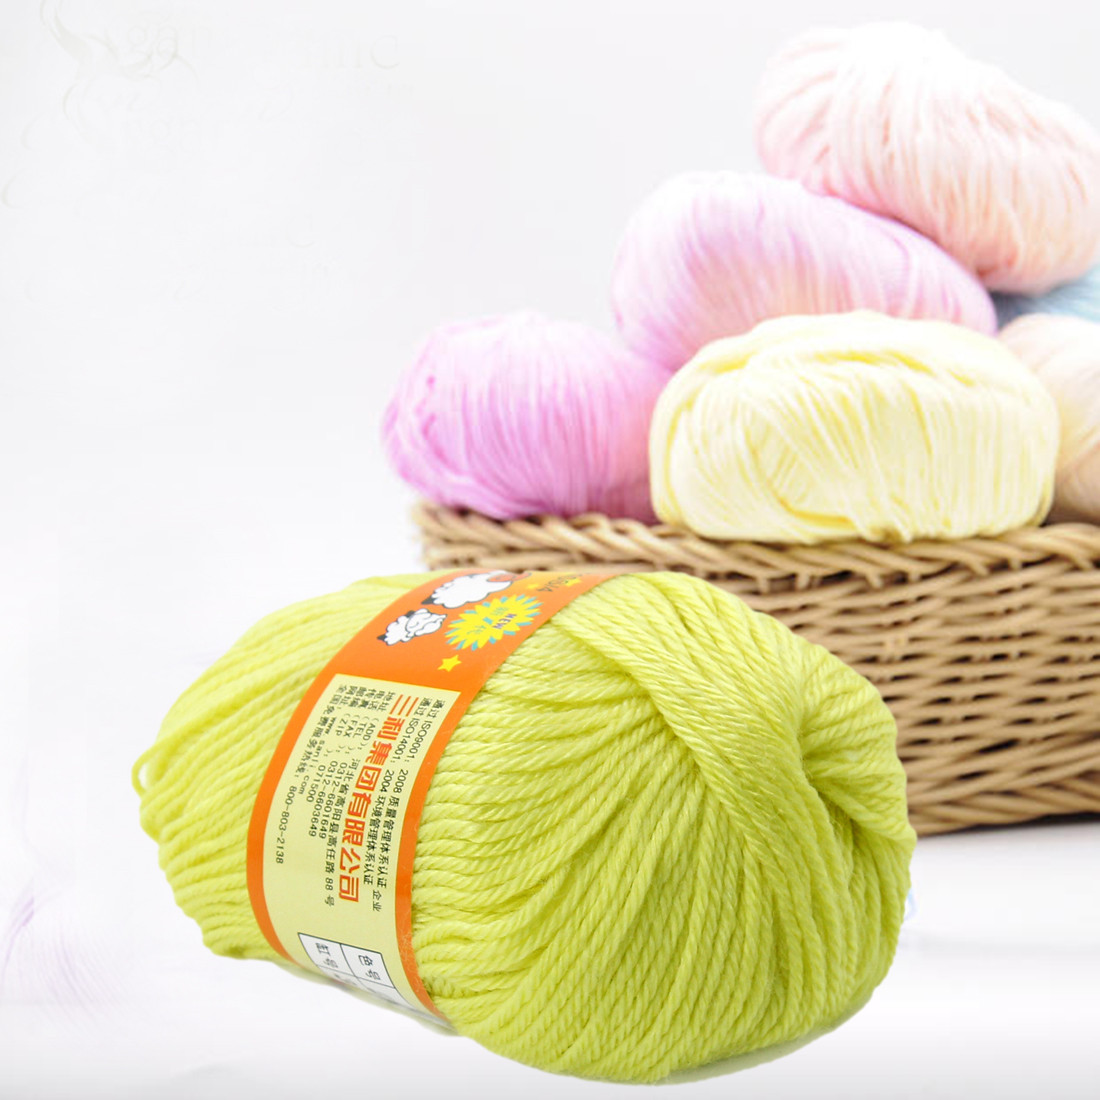 Softest Yarn for Crochet Awesome Hot 1pc 50g Cotton Knitting Yarn Crochet Yarn for Knitting Of Charming 43 Images softest Yarn for Crochet